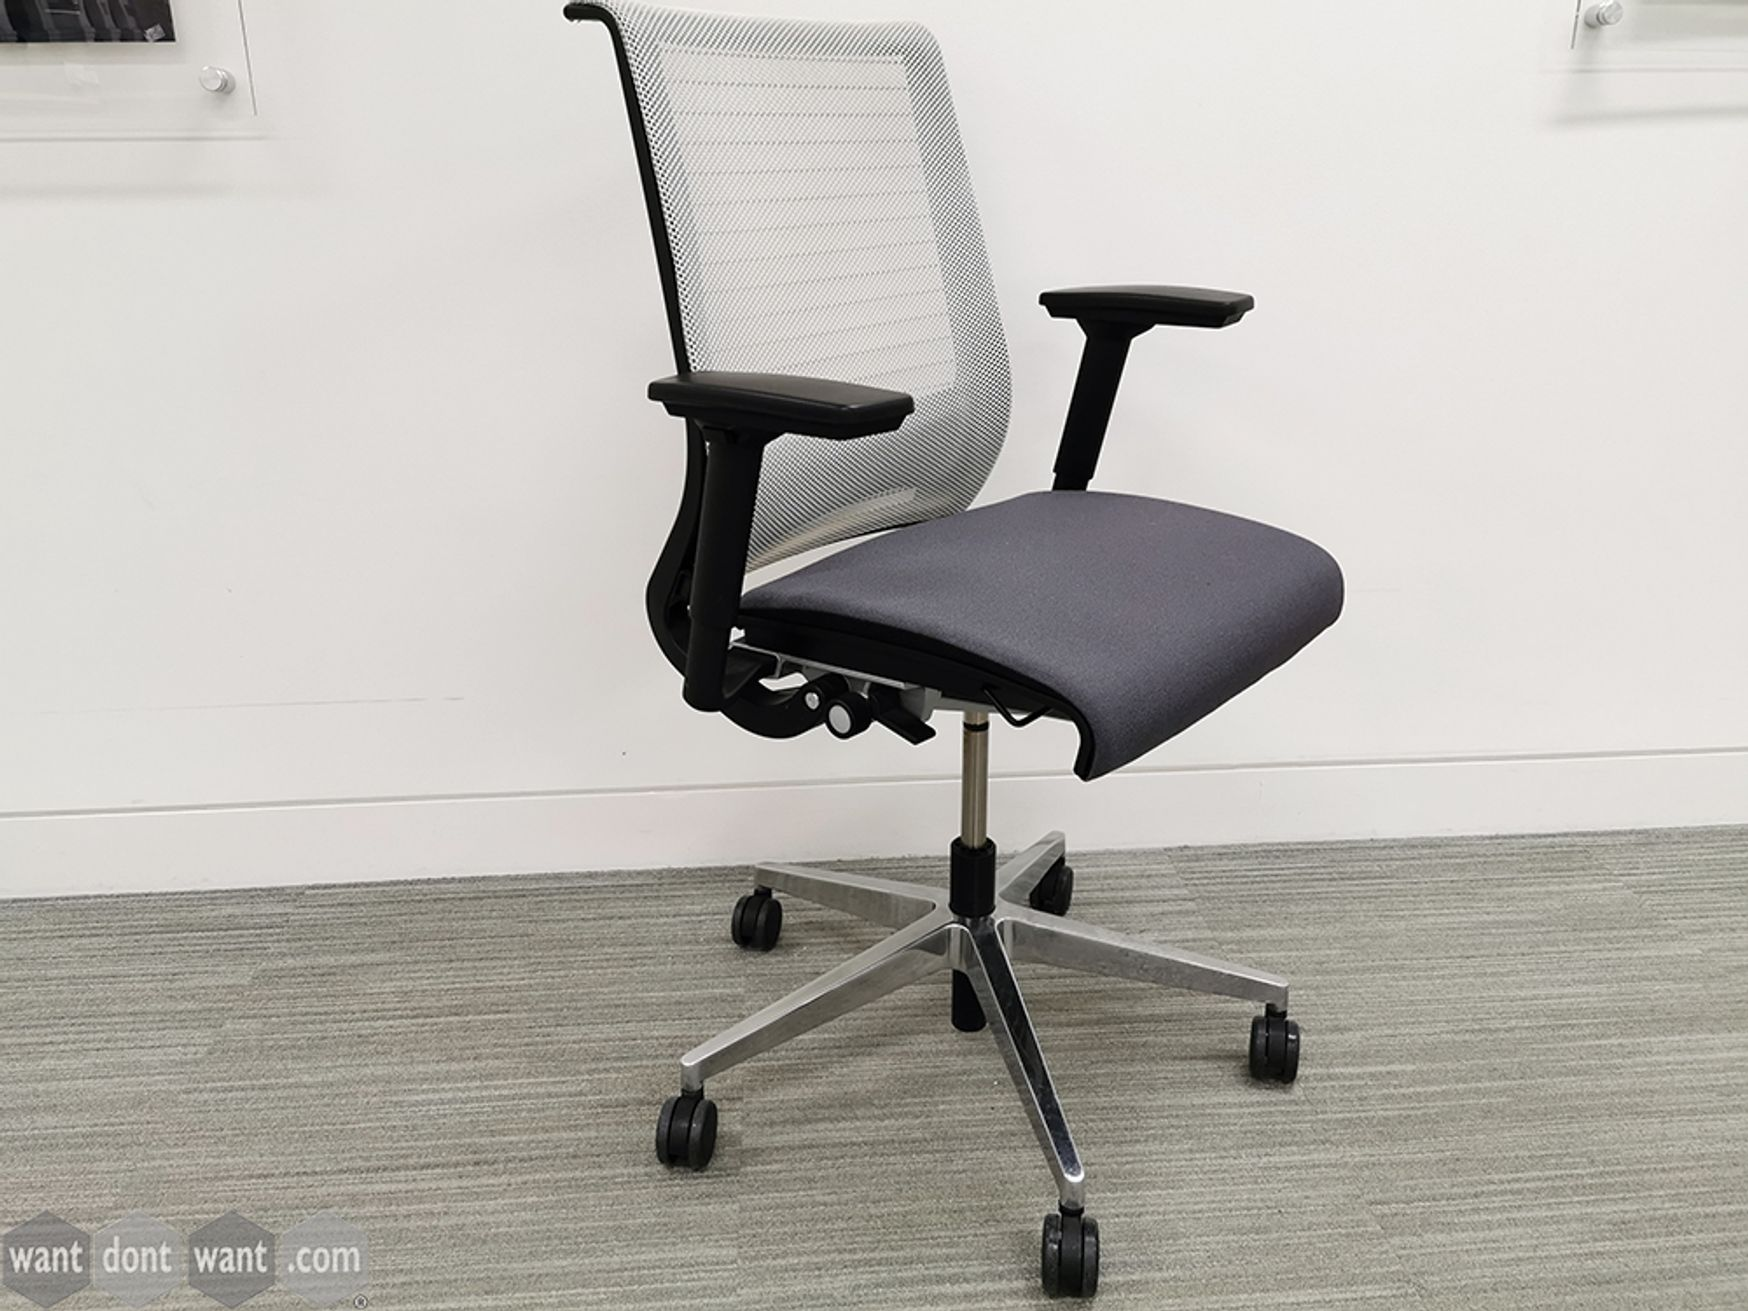 Used Steelcase Think Operator Chairs with Grey Seat Pad and White Back on Chrome Base